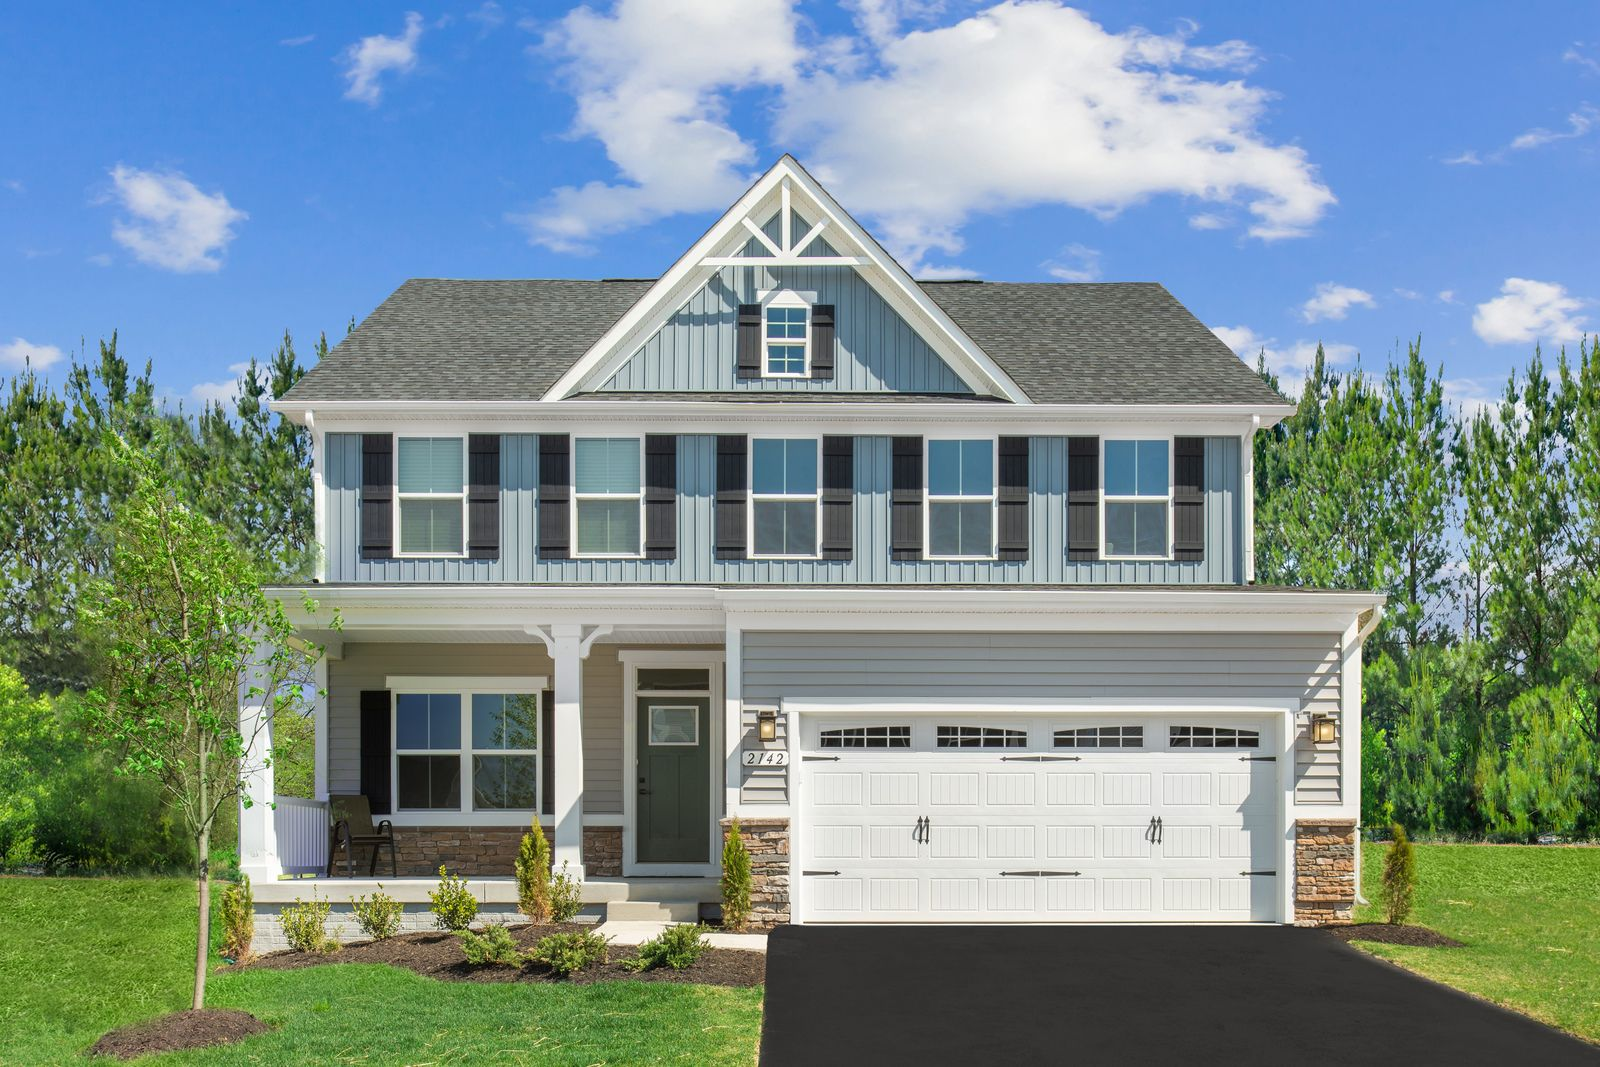 Welcome Home to Seneca Trails in Jackson Township:The newest single-family homes in a parklike-setting in Seneca Valley Schools with low Butler County Taxes. Convenient to Cranberry & I-79.Click here to join the VIP List.